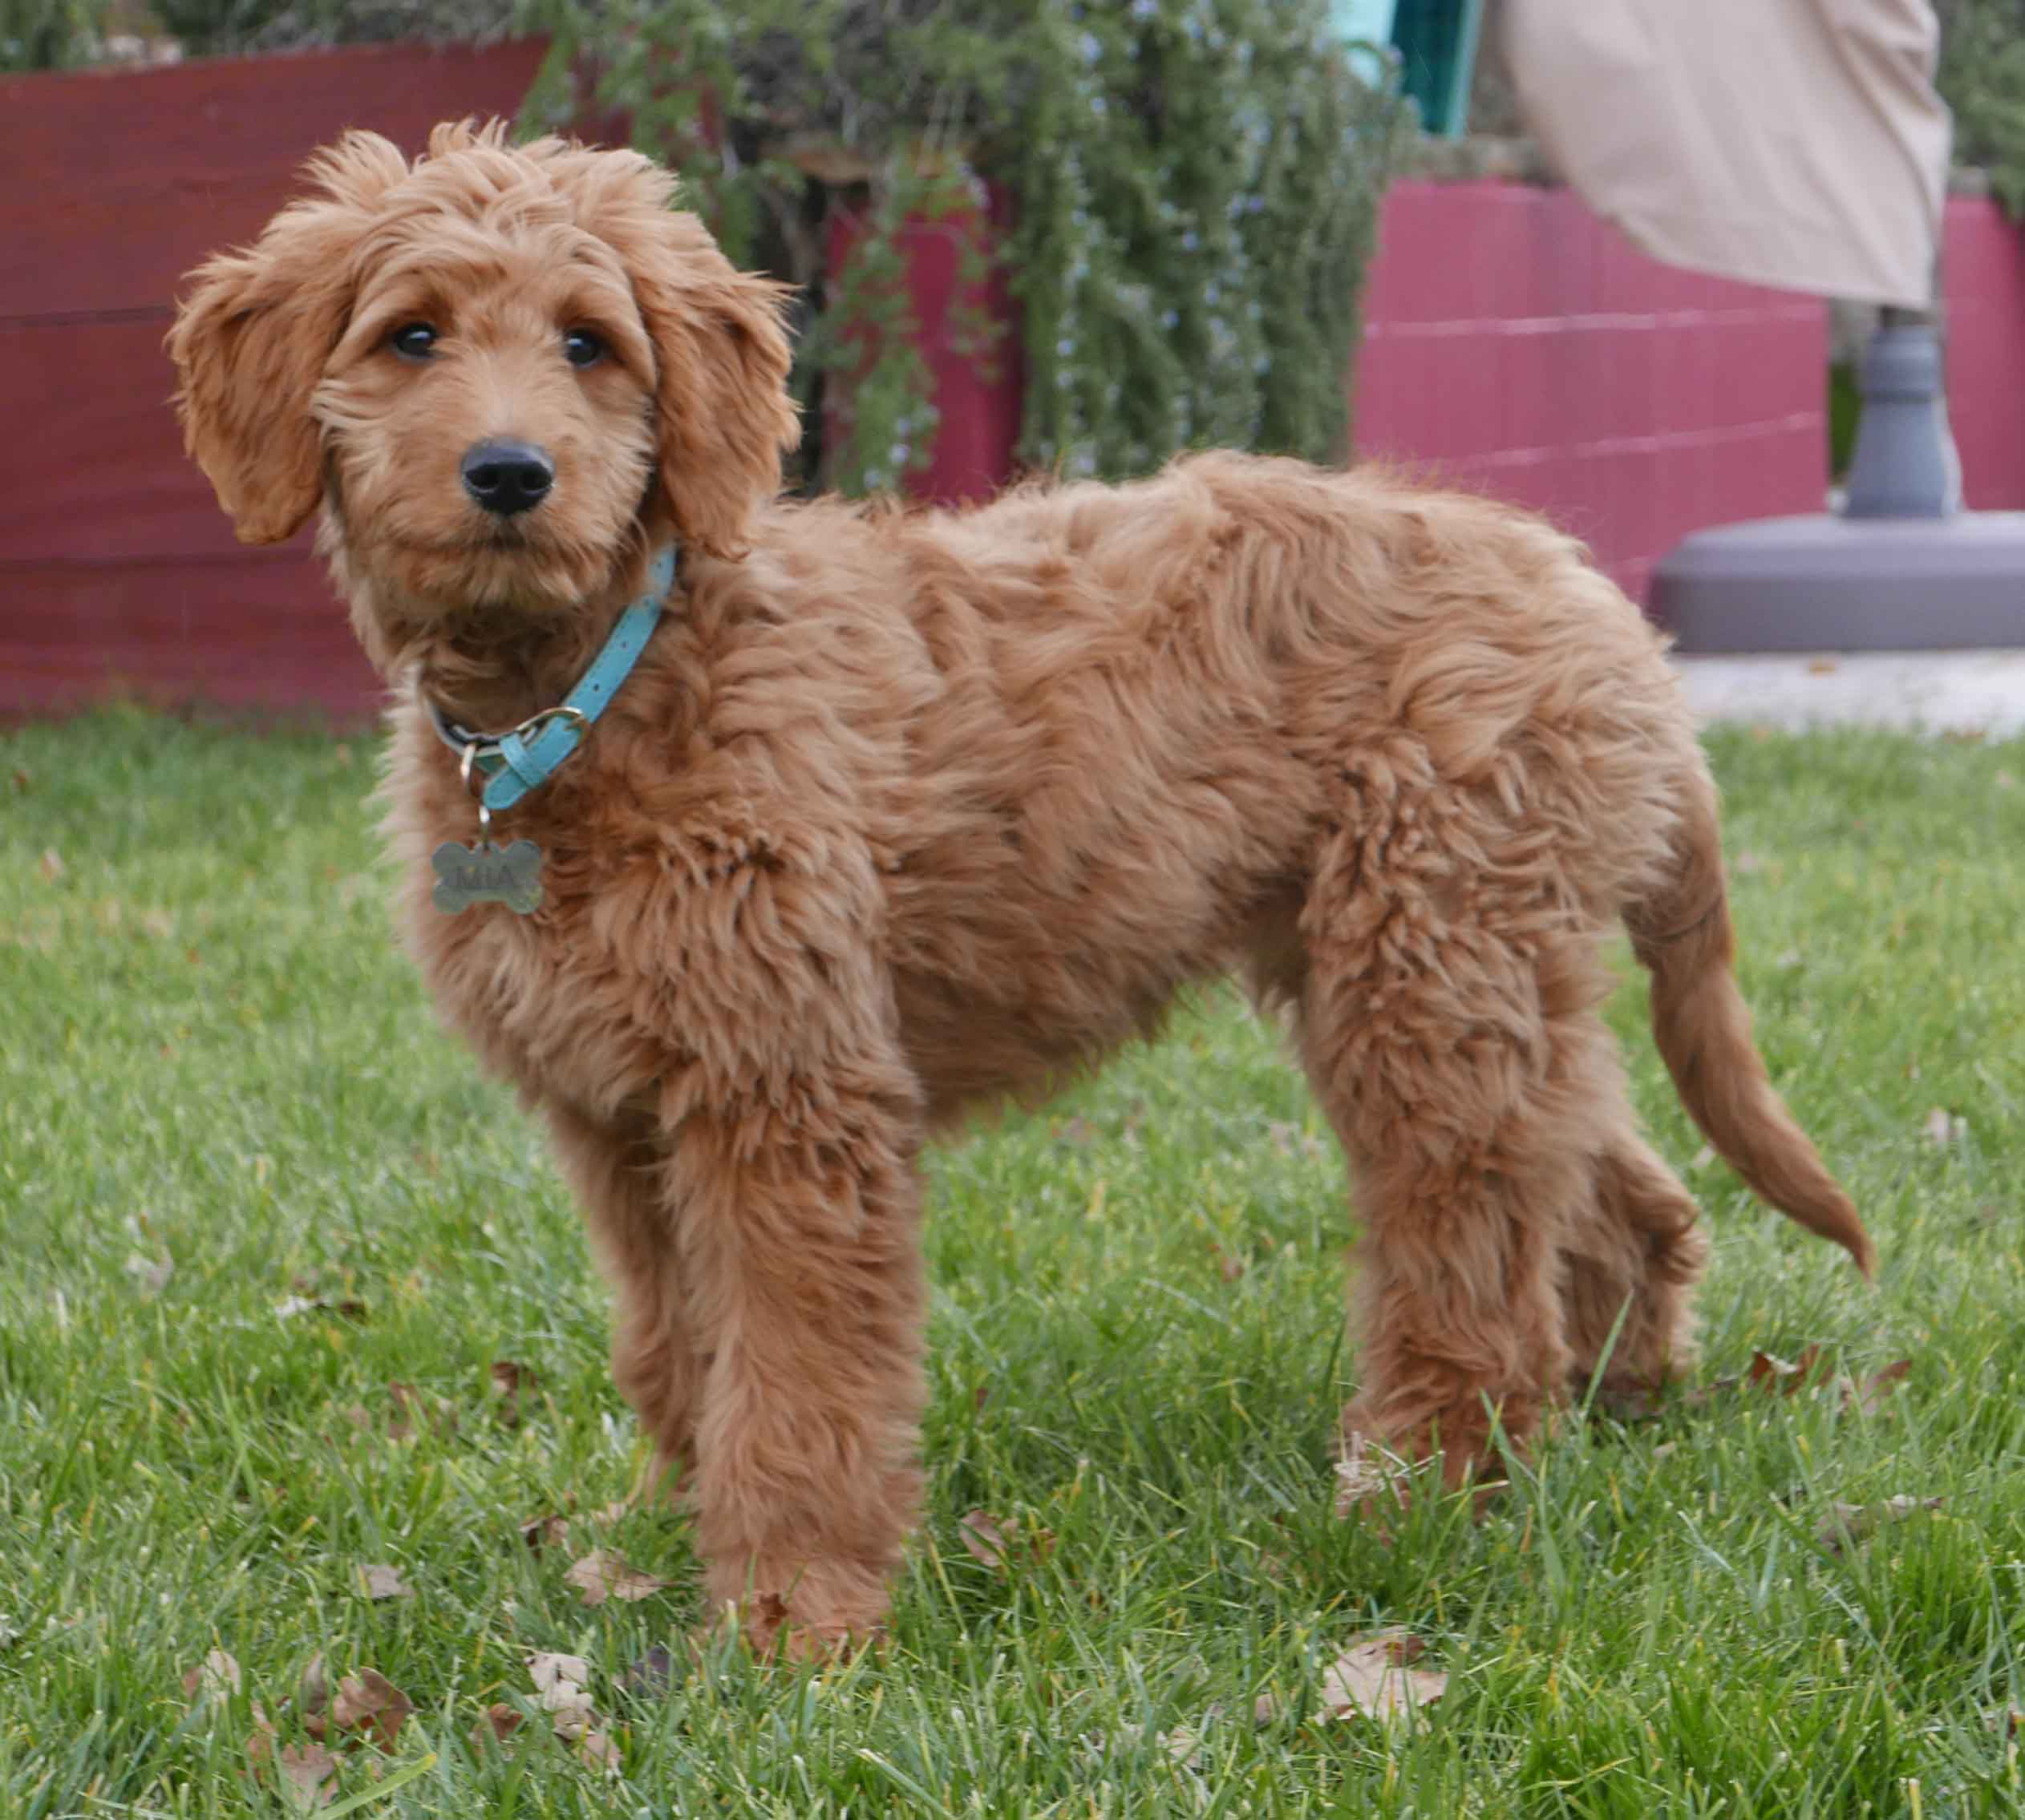 Goldendoodle dog breed fully grown.